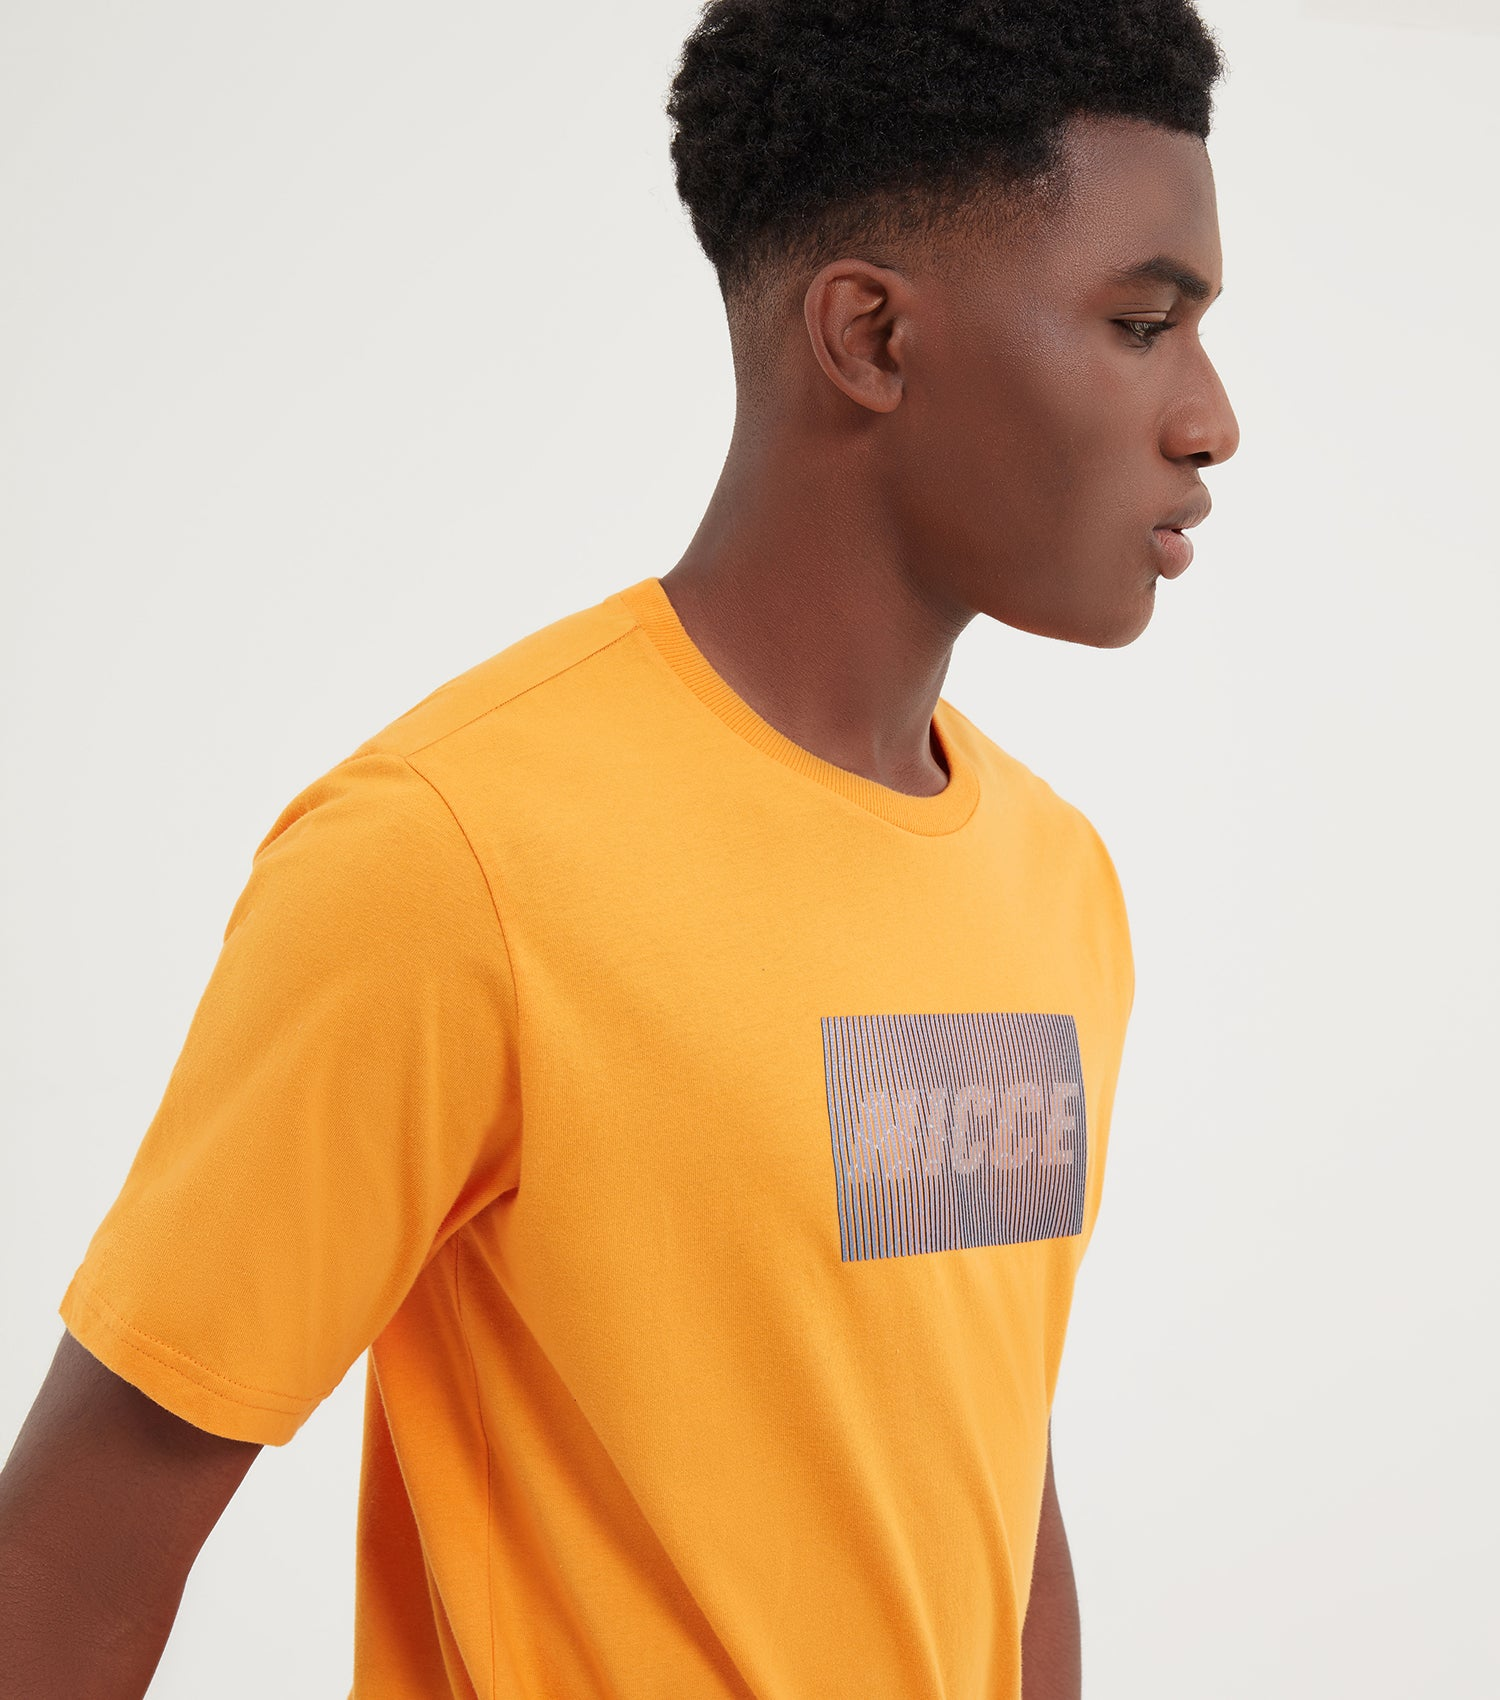 NICCE Mens Feint T-Shirt | Flaming Orange, T-Shirts